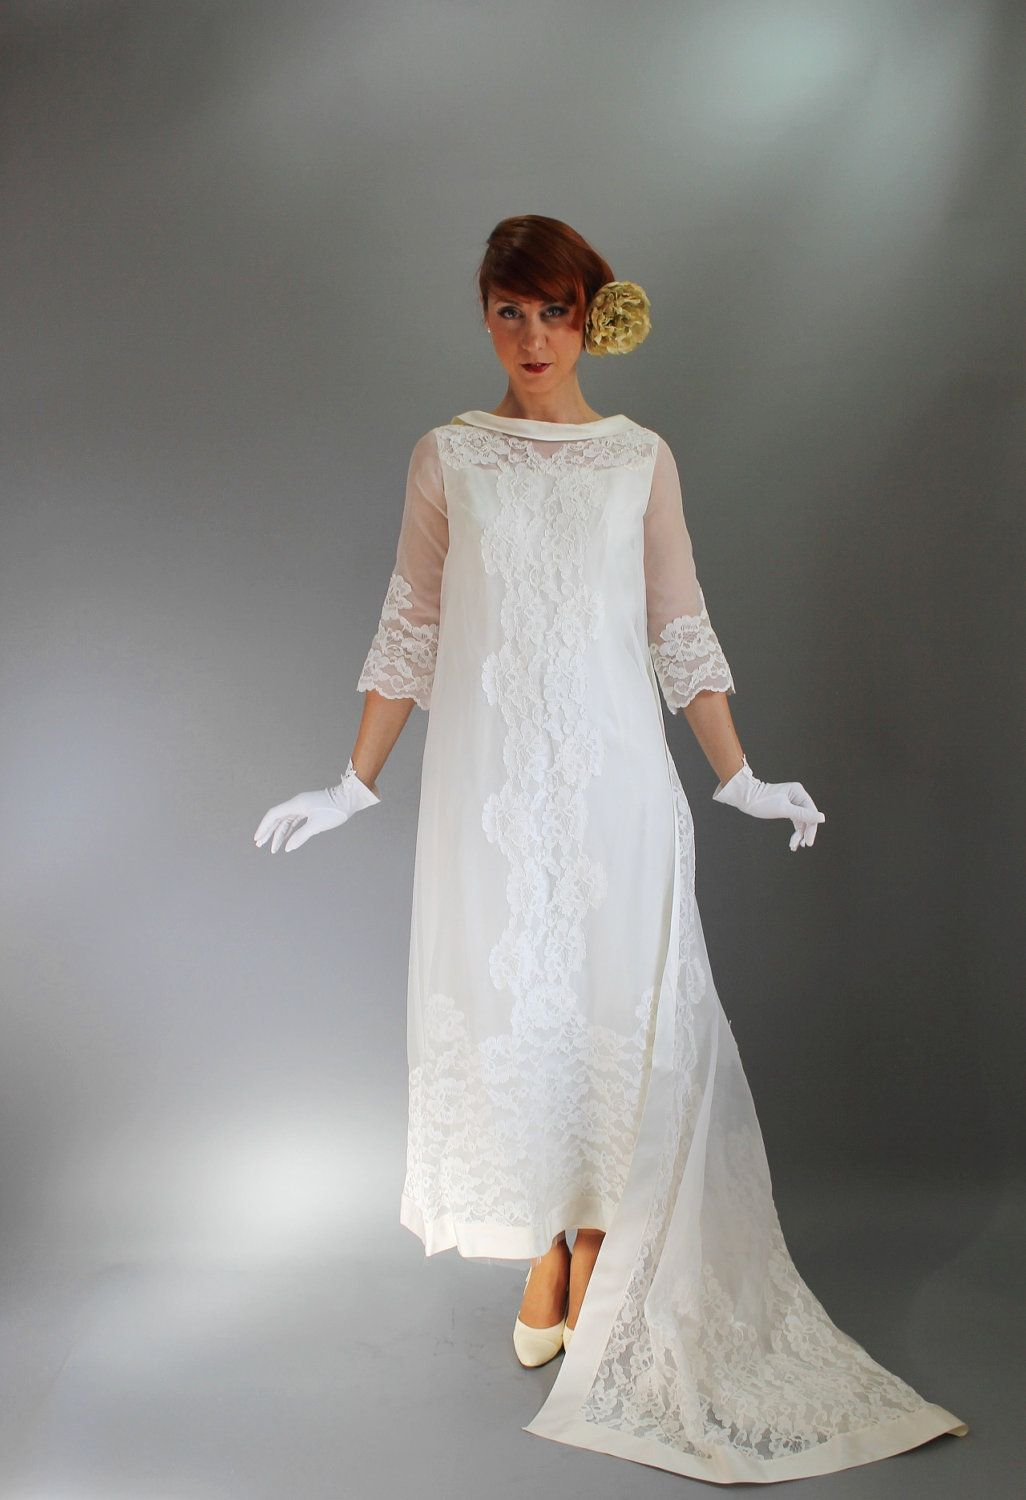 Vintage 1960s Long Lace Wedding Dress. Train. Mad Men